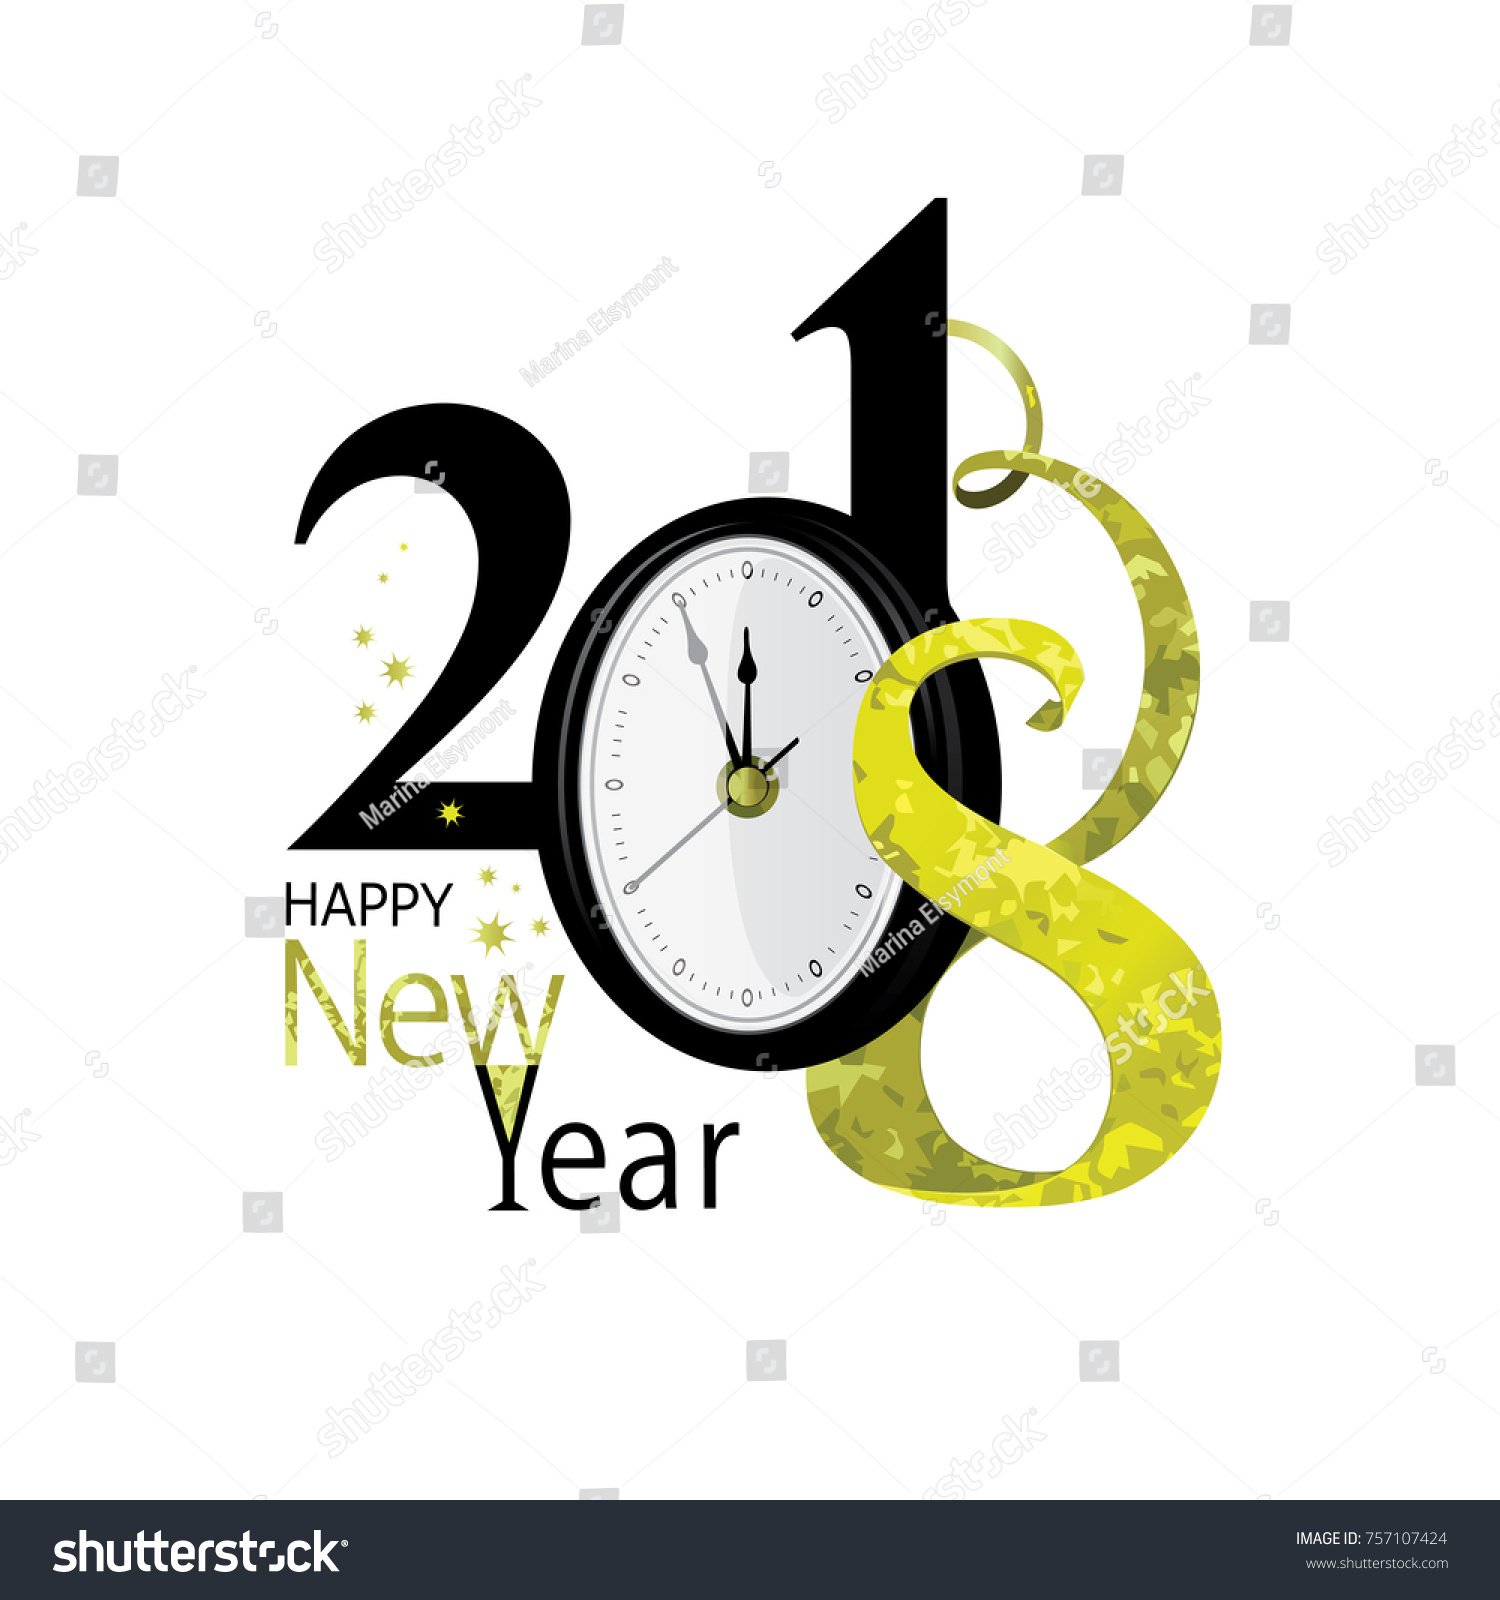 2018 happy new year gold and black colors clock stylized text happy new